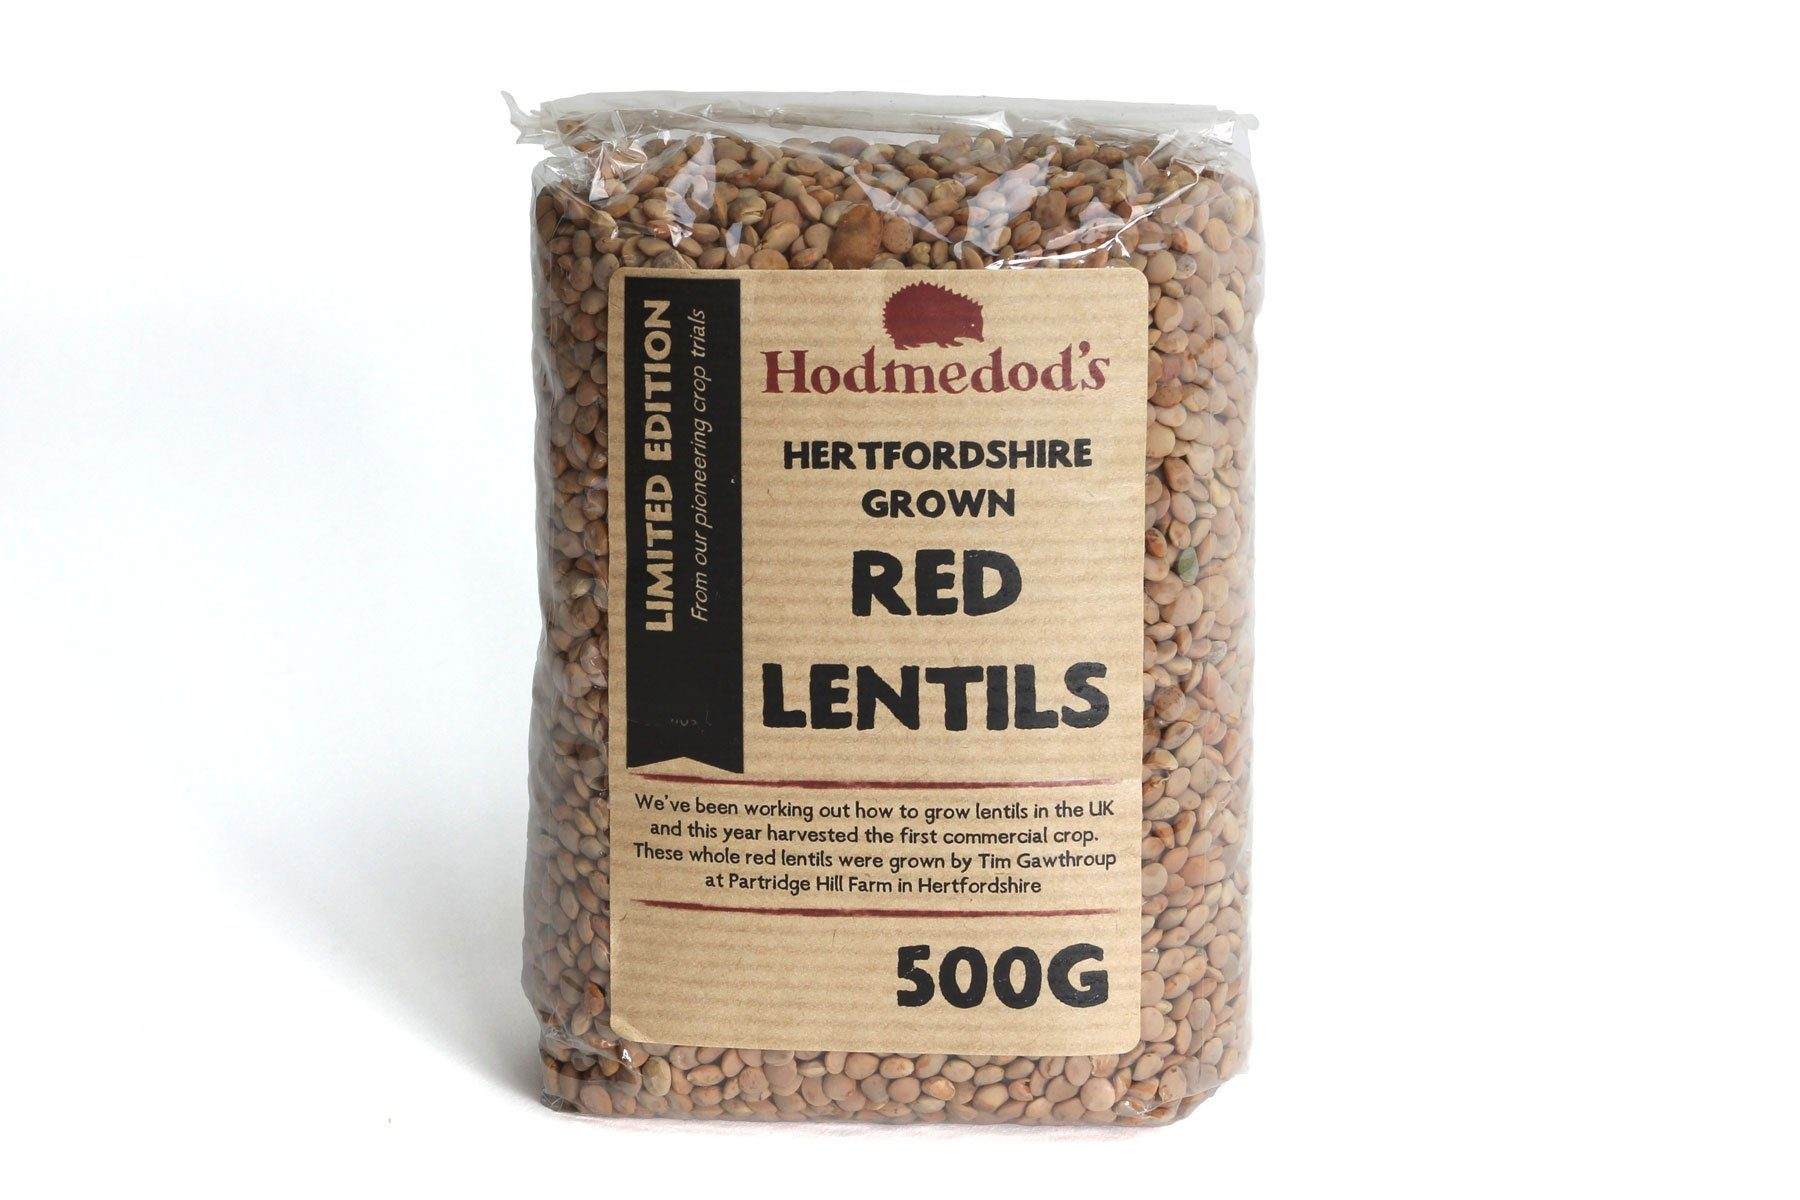 Red Lentils from Hertfordshire